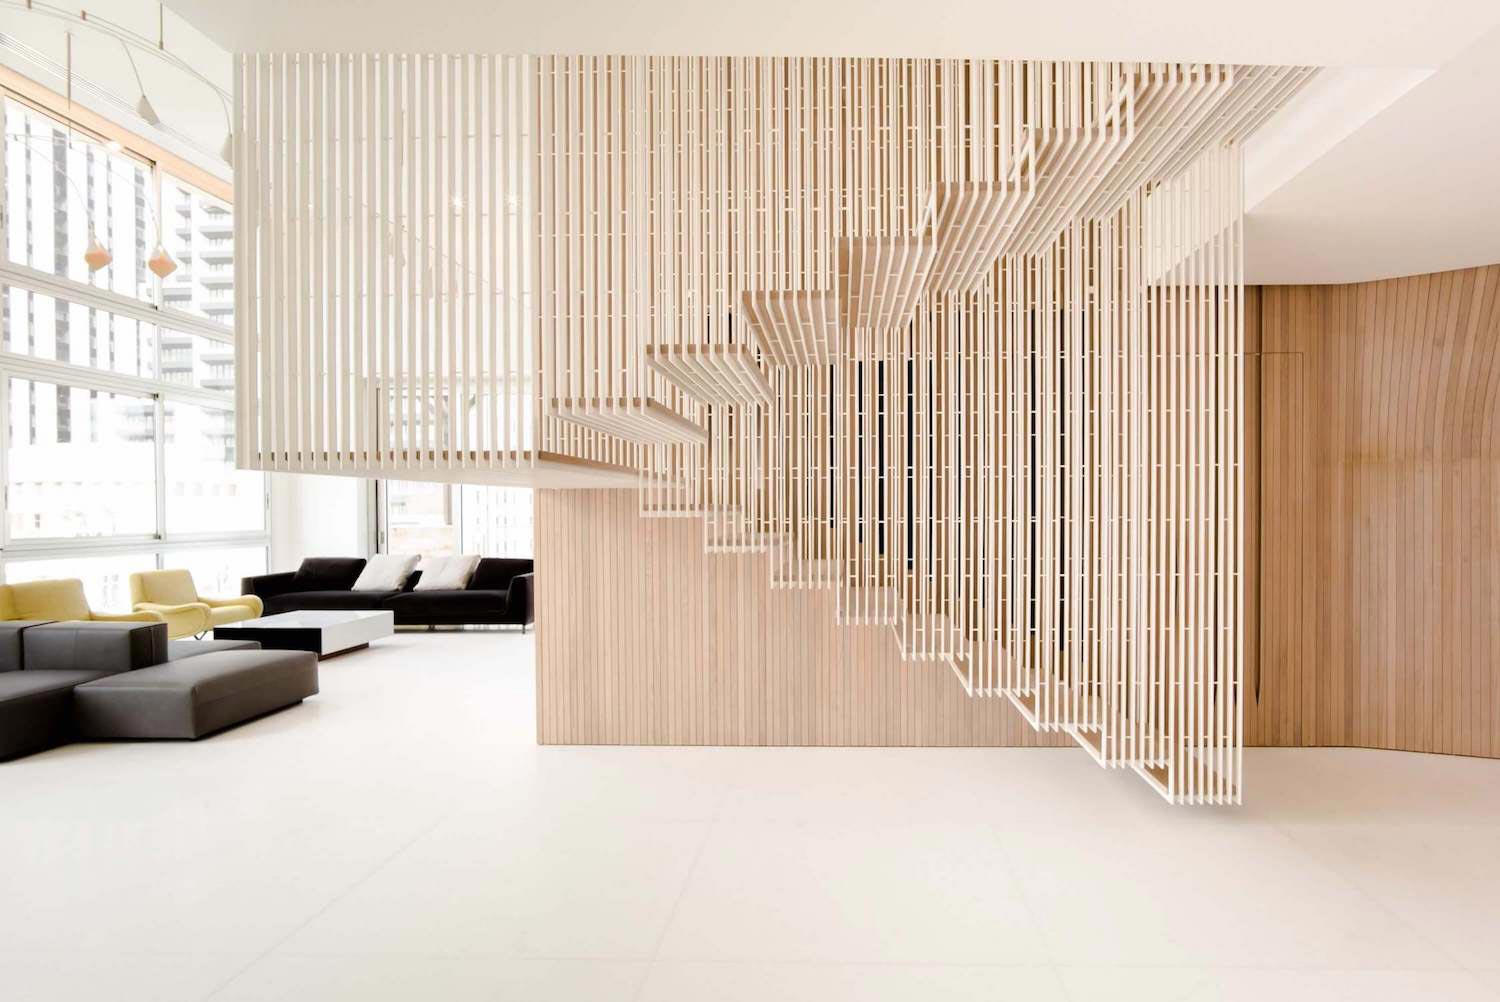 Defined Cladded Wooden Skin Floating Structure Suspended Ceiling Vertical Steel Profiles 02